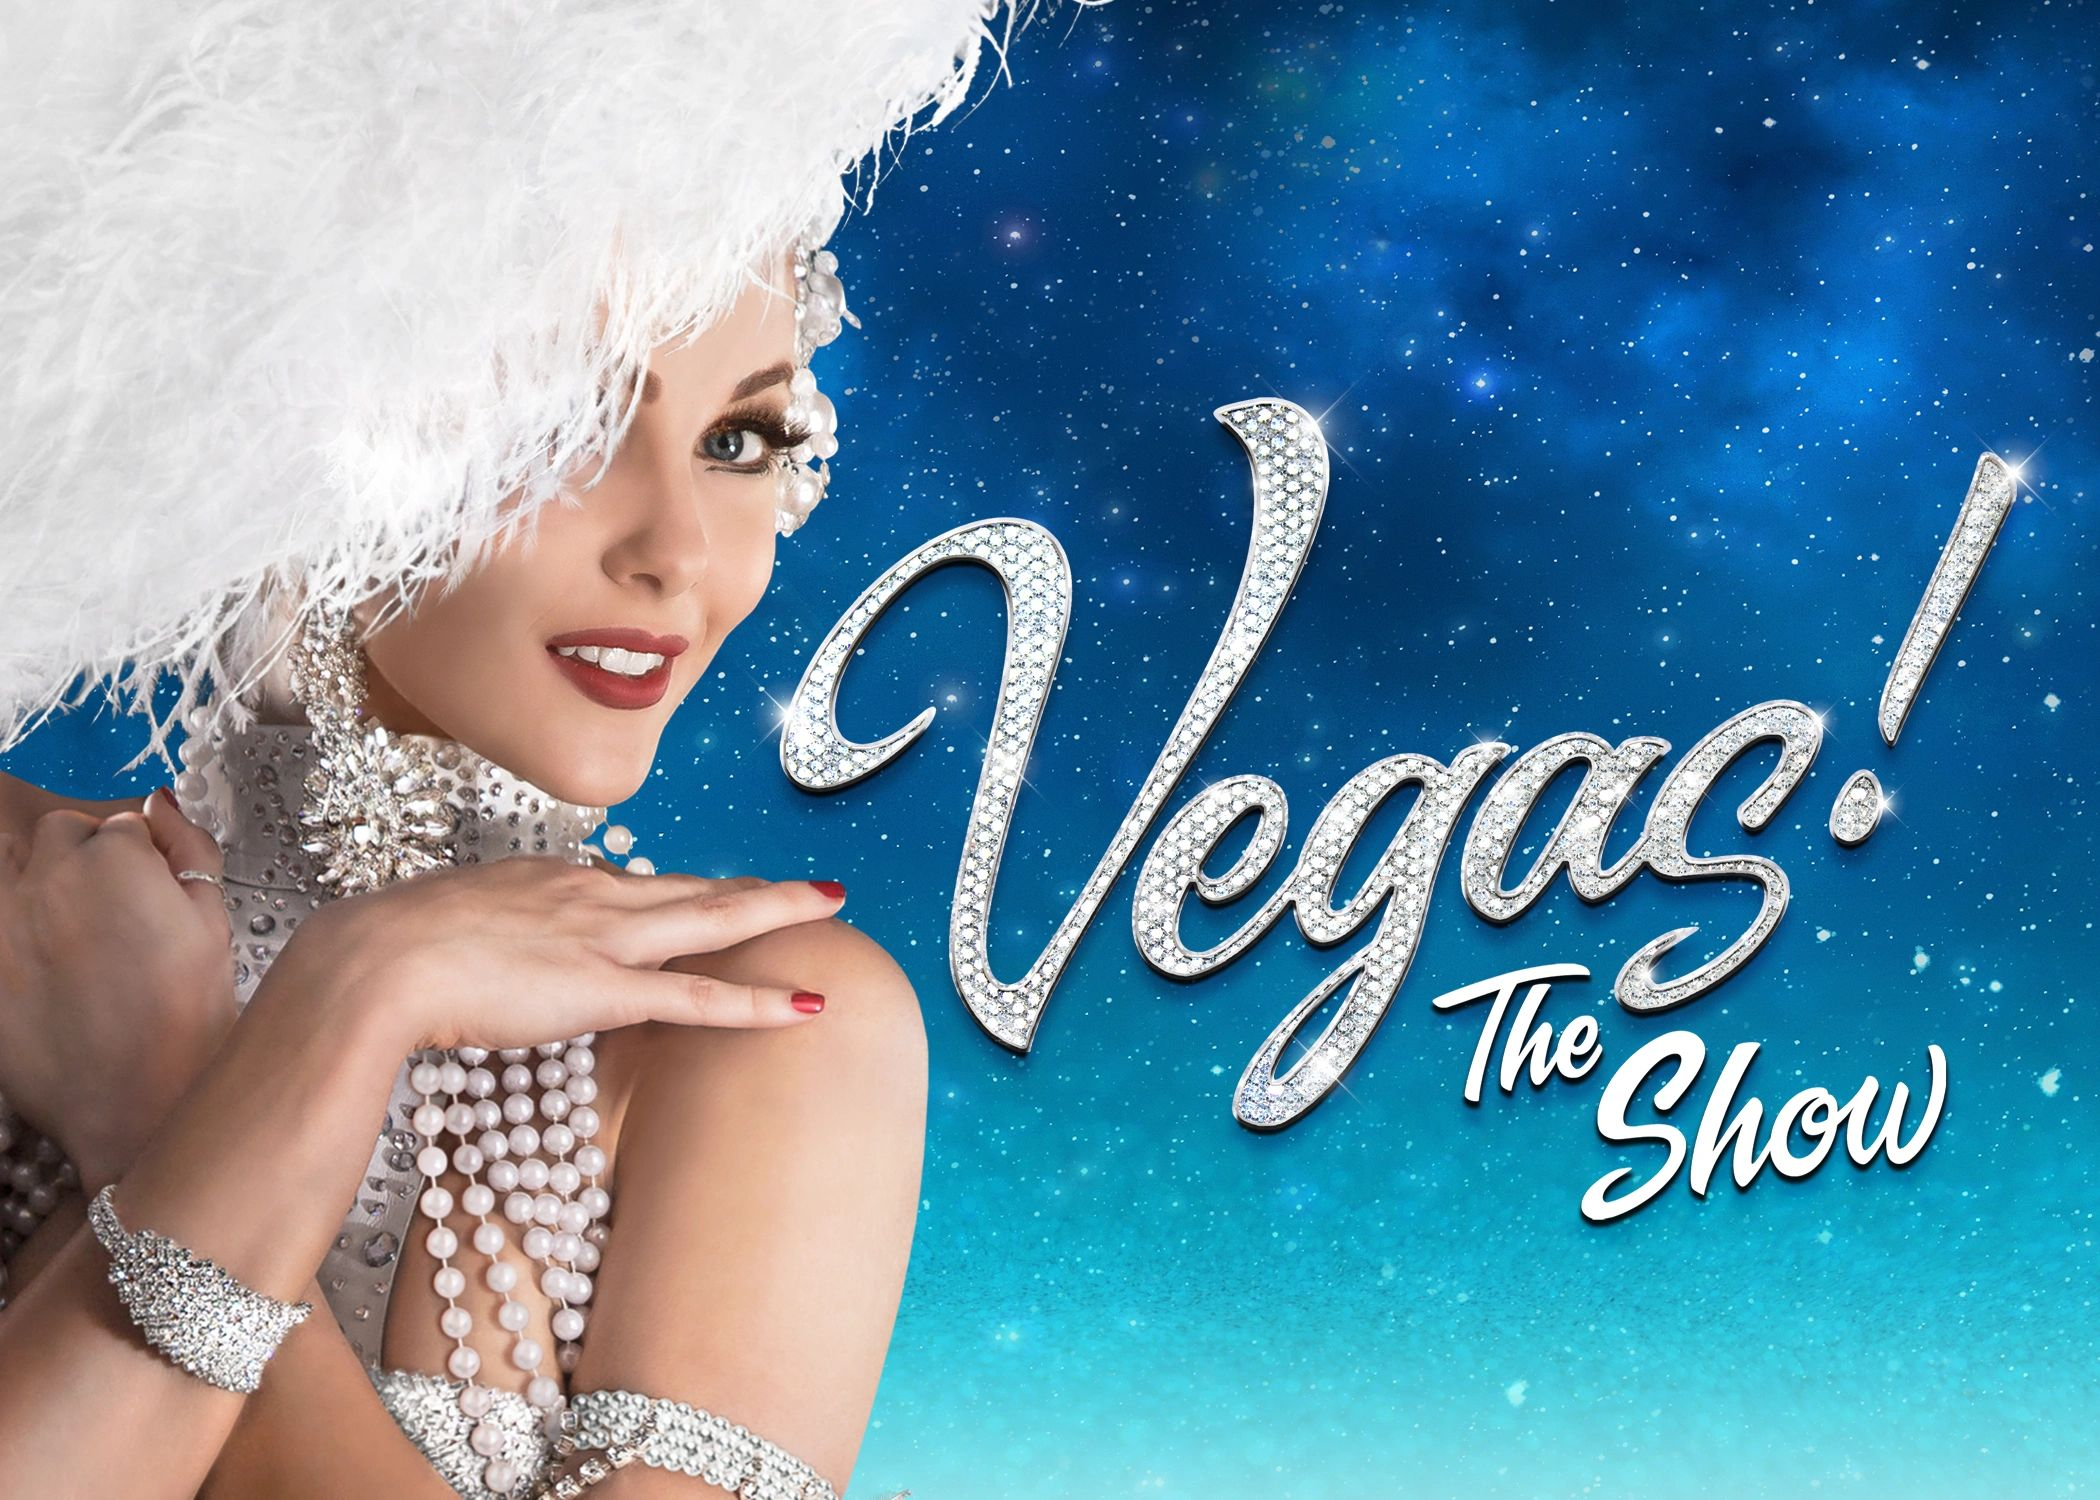 Showgirls are featured in VEGAS! THE SHOW